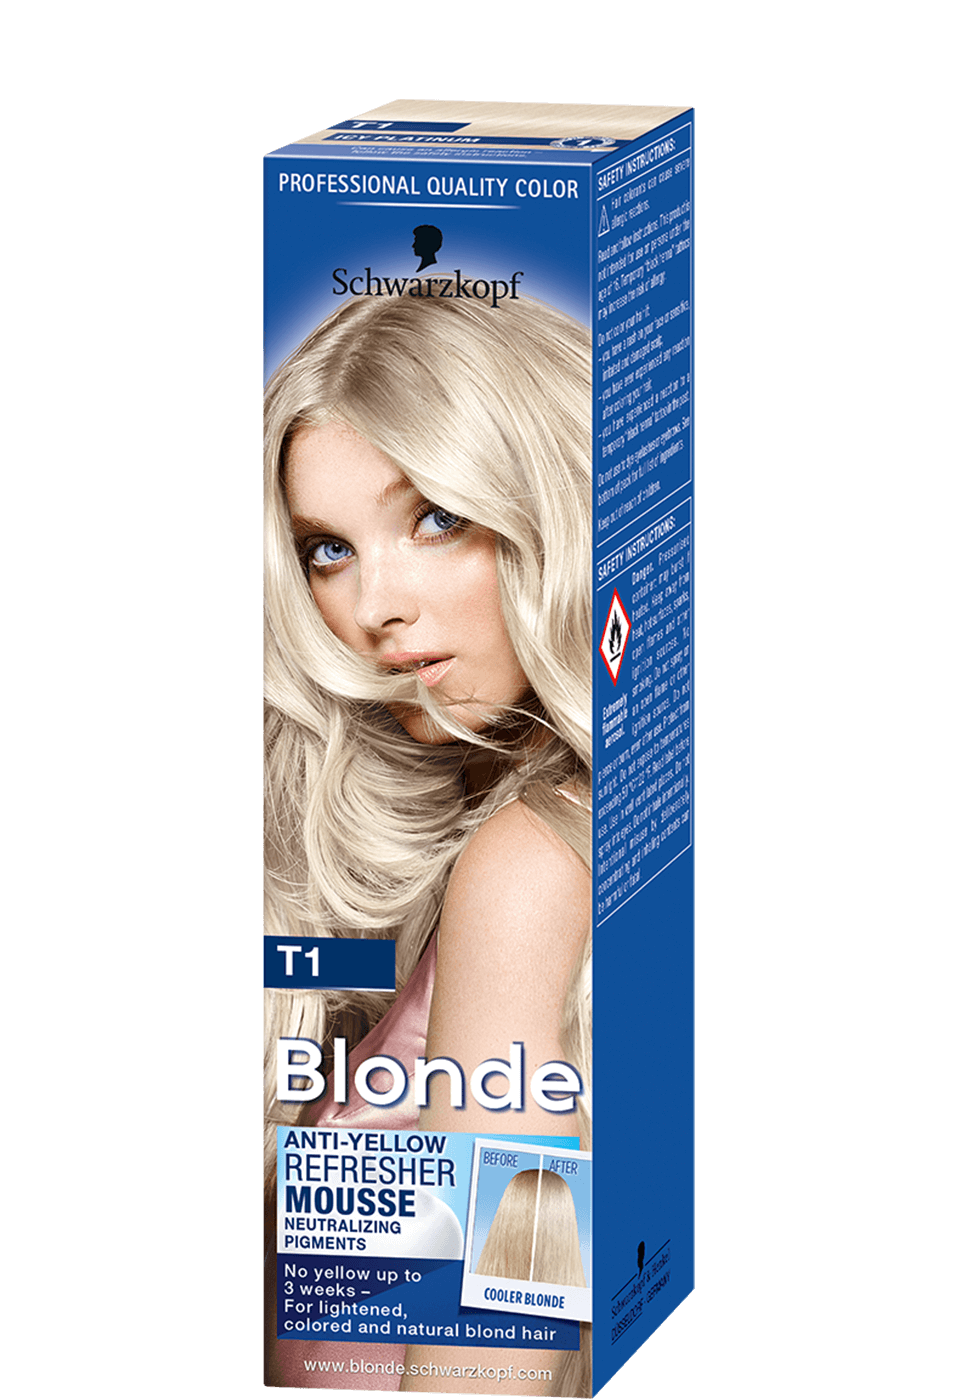 Blonde T1 Anti-Yellow Refresher Mousse